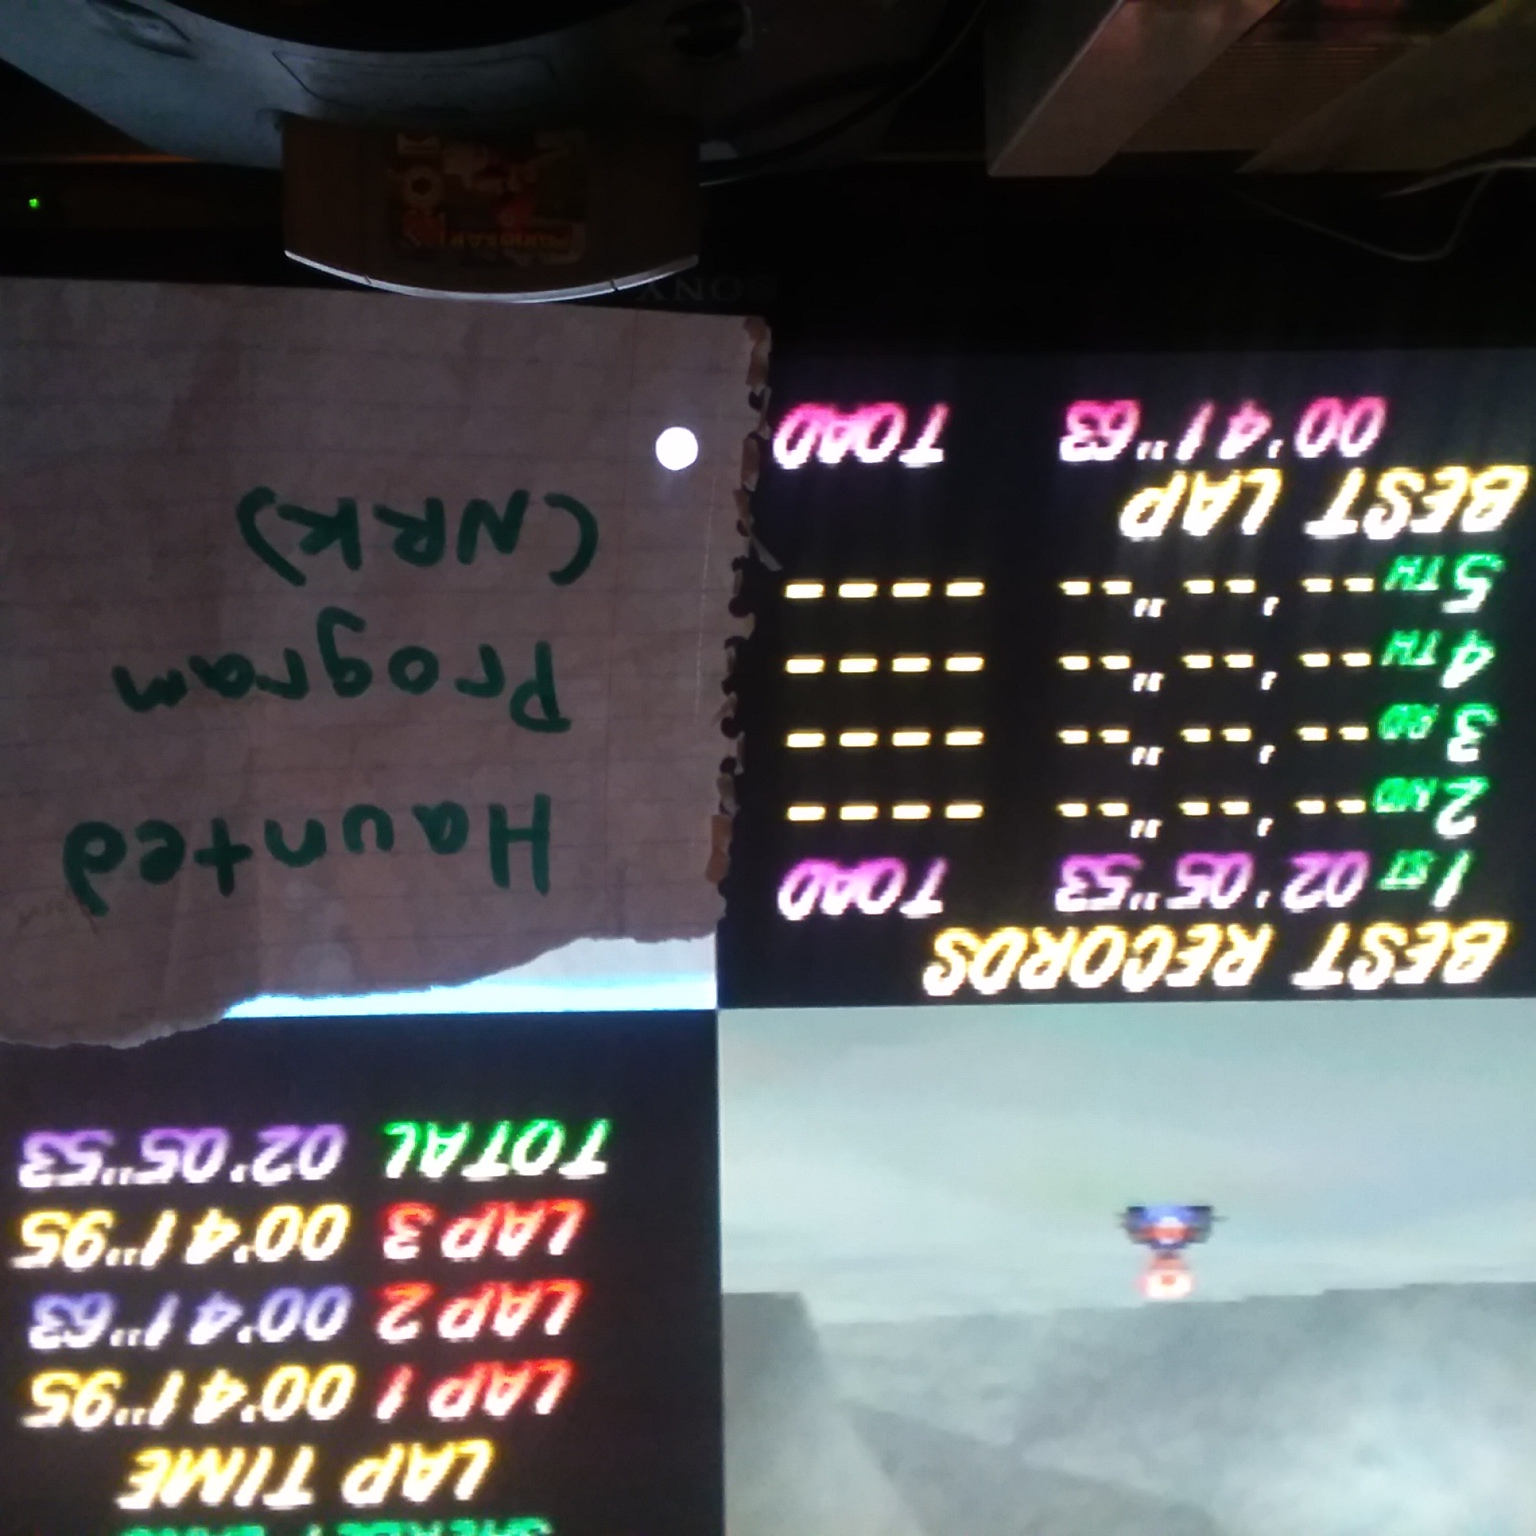 Mario Kart 64: Sherbet Land [Time Trial] time of 0:02:05.53